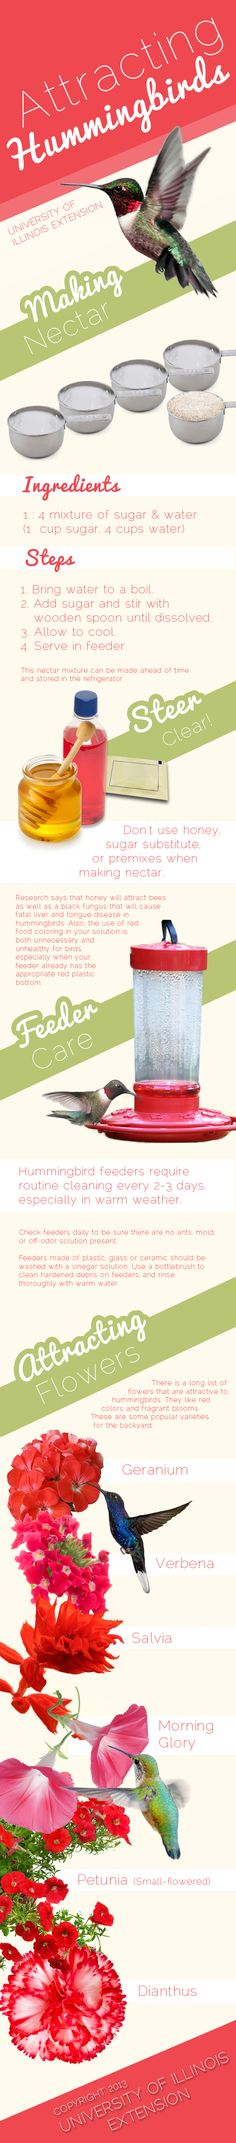 Learn some simple ways to attract hummingbirds to your garden. #Hummingbird #HummingbirdFeeder #Garden